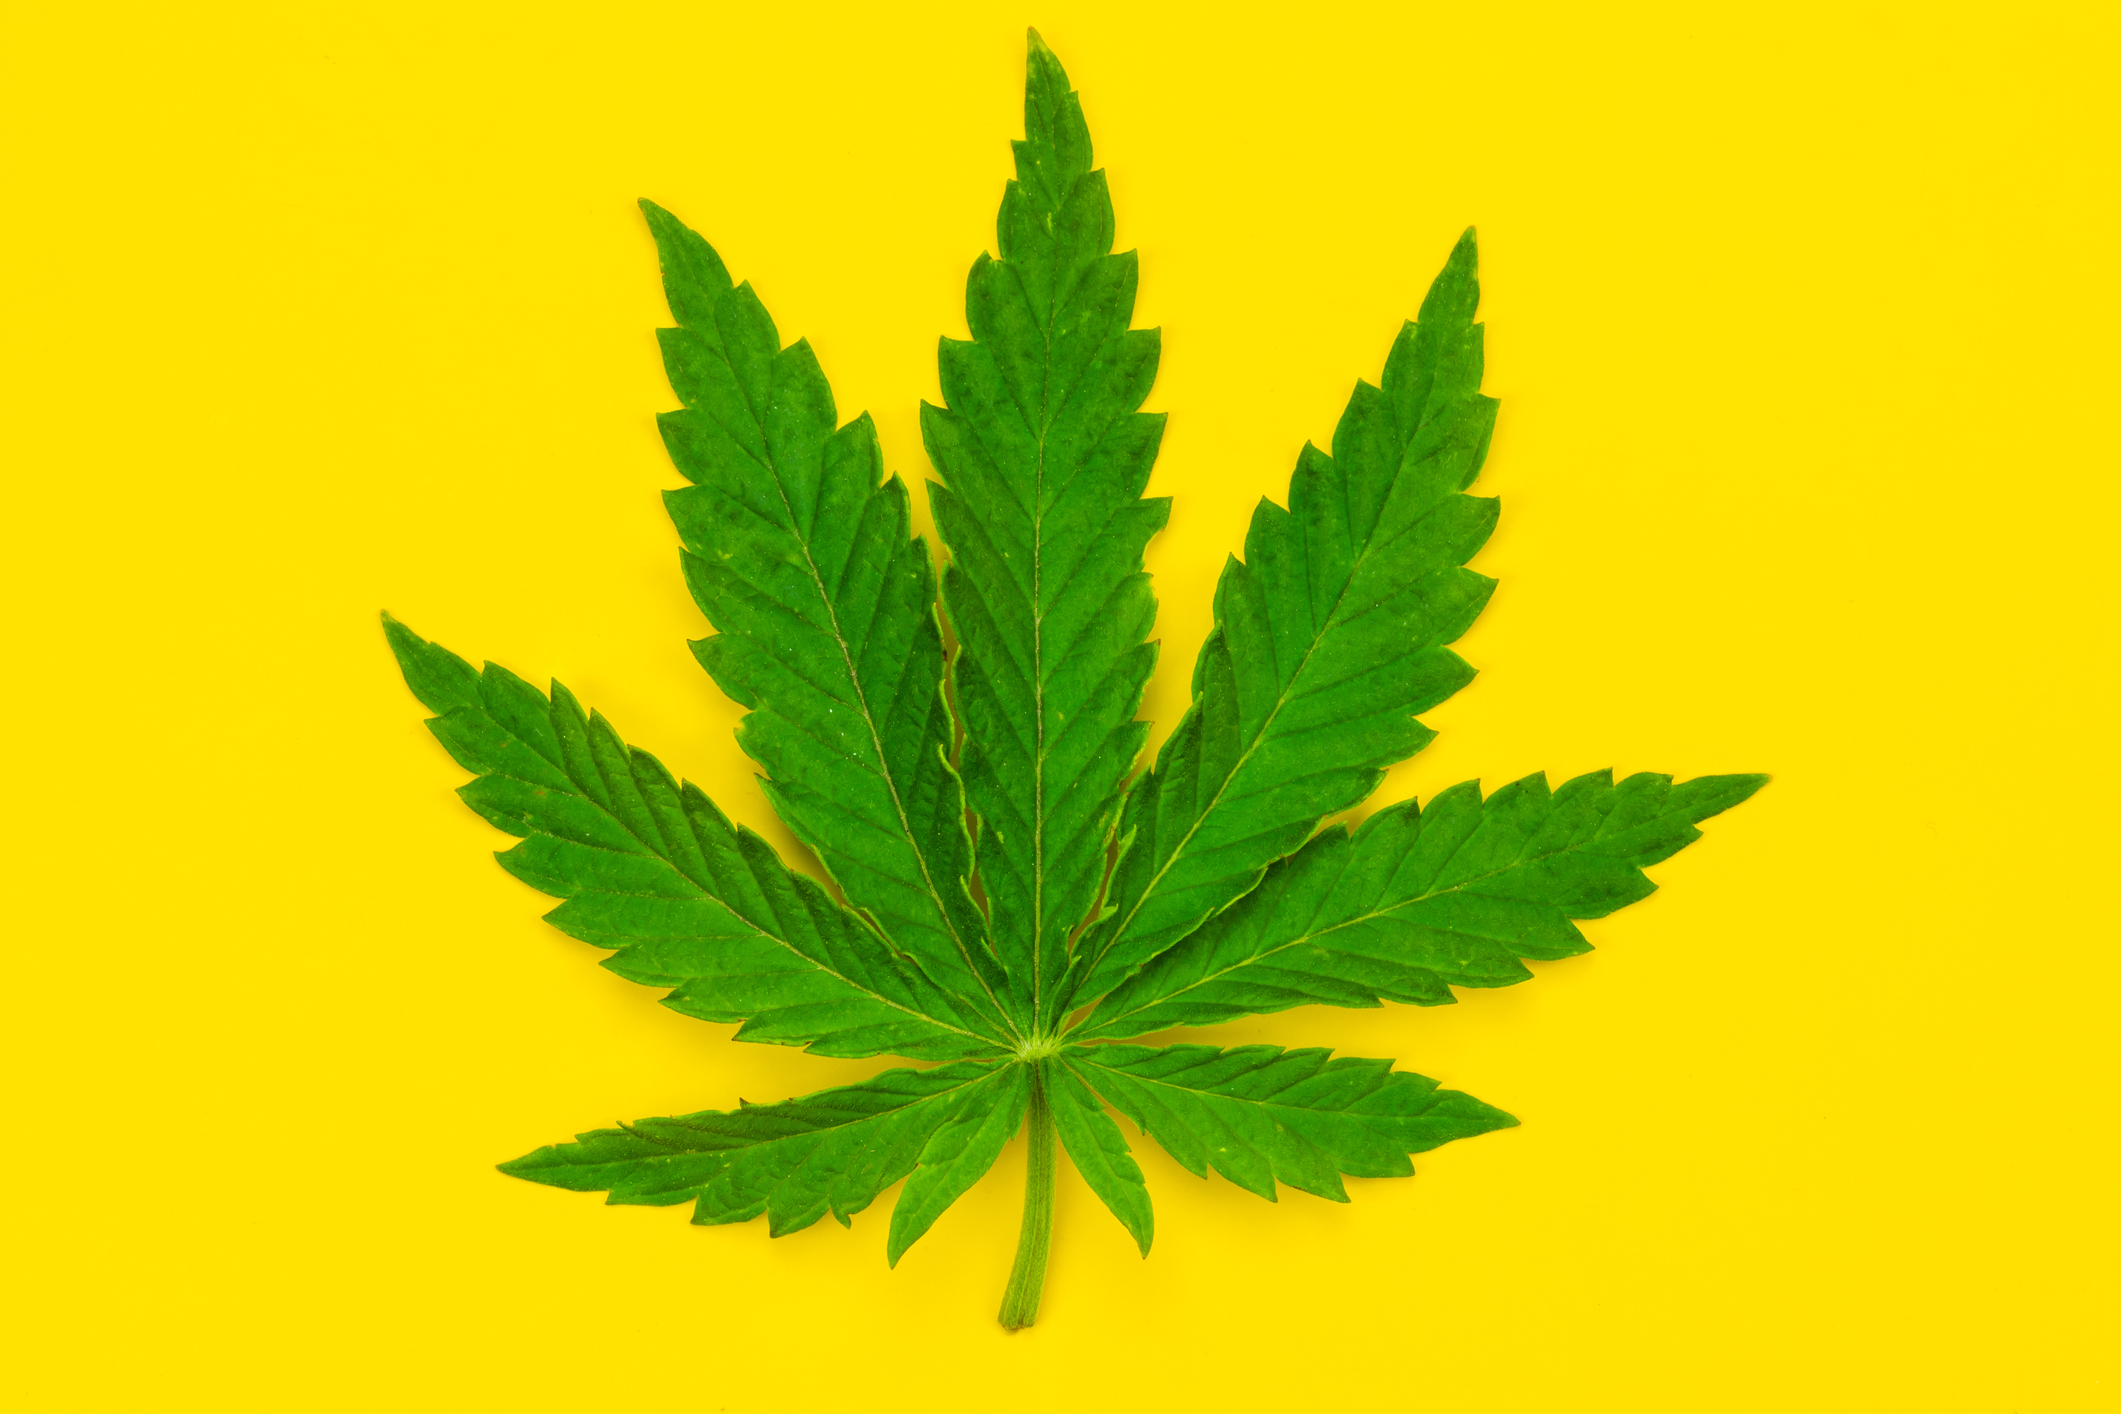 Marijuana leaf on a yellow background.